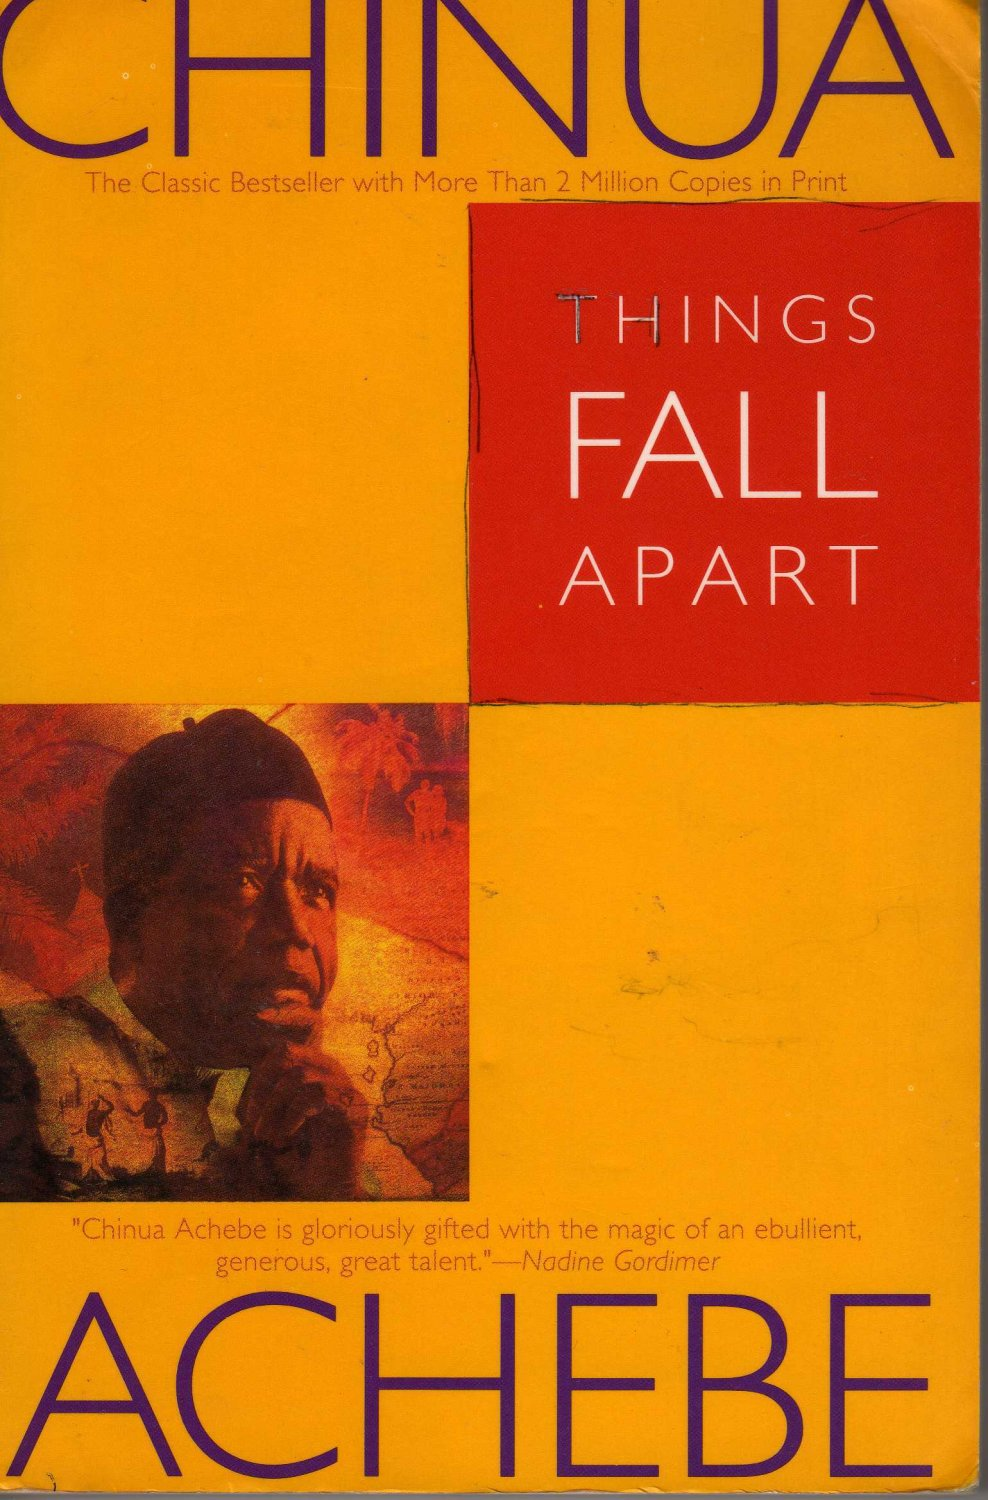 essays for things fall apart by chinua achebe an image